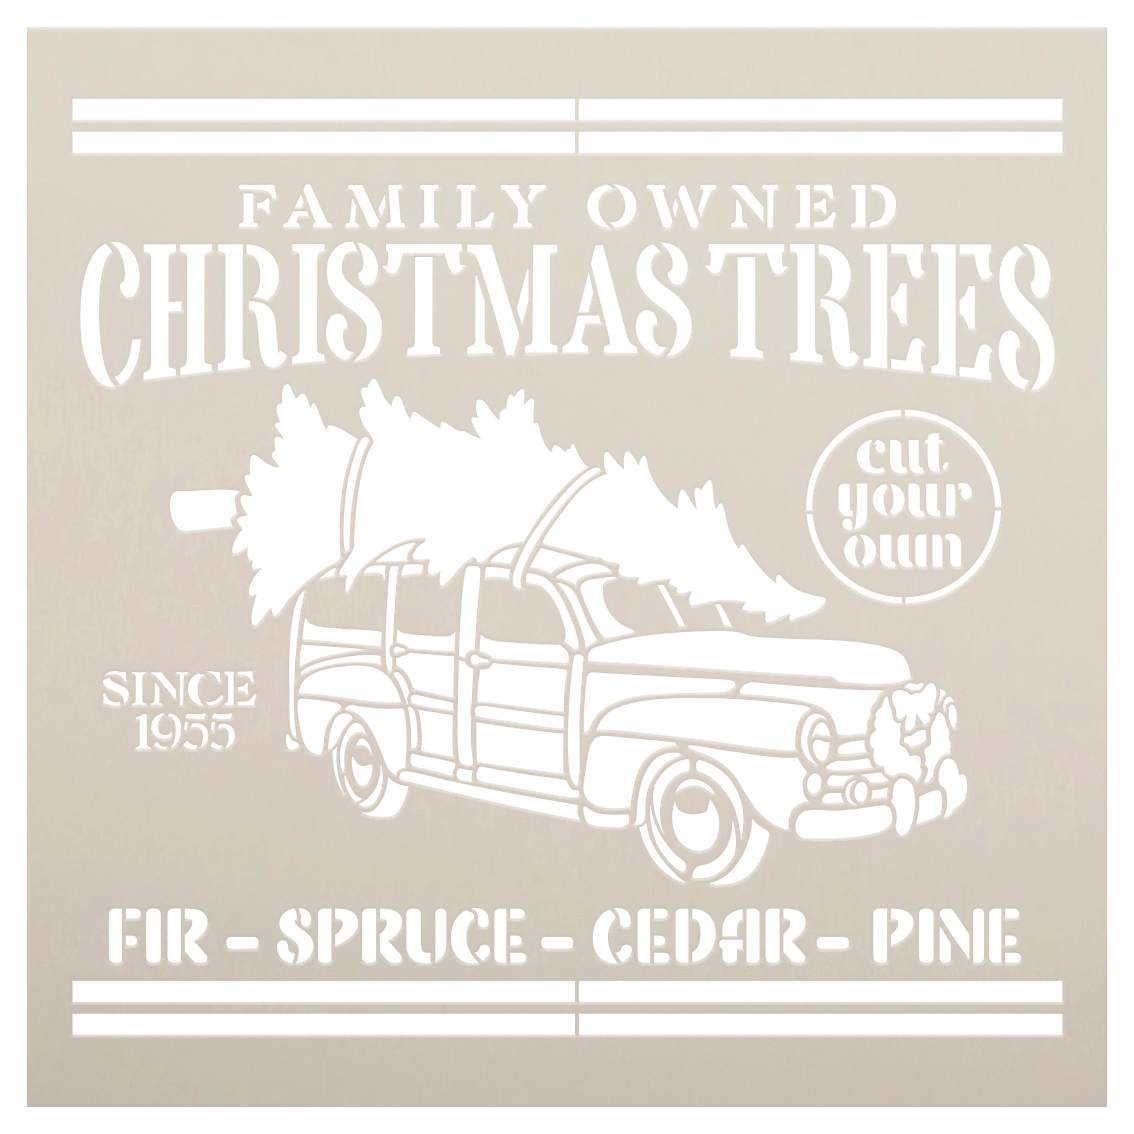 Family Owned Christmas Trees Since 1955 Stencil by StudioR12   DIY Home Decor Gift   Craft & Paint Wood Sign   Reusable Mylar Template   Select Size